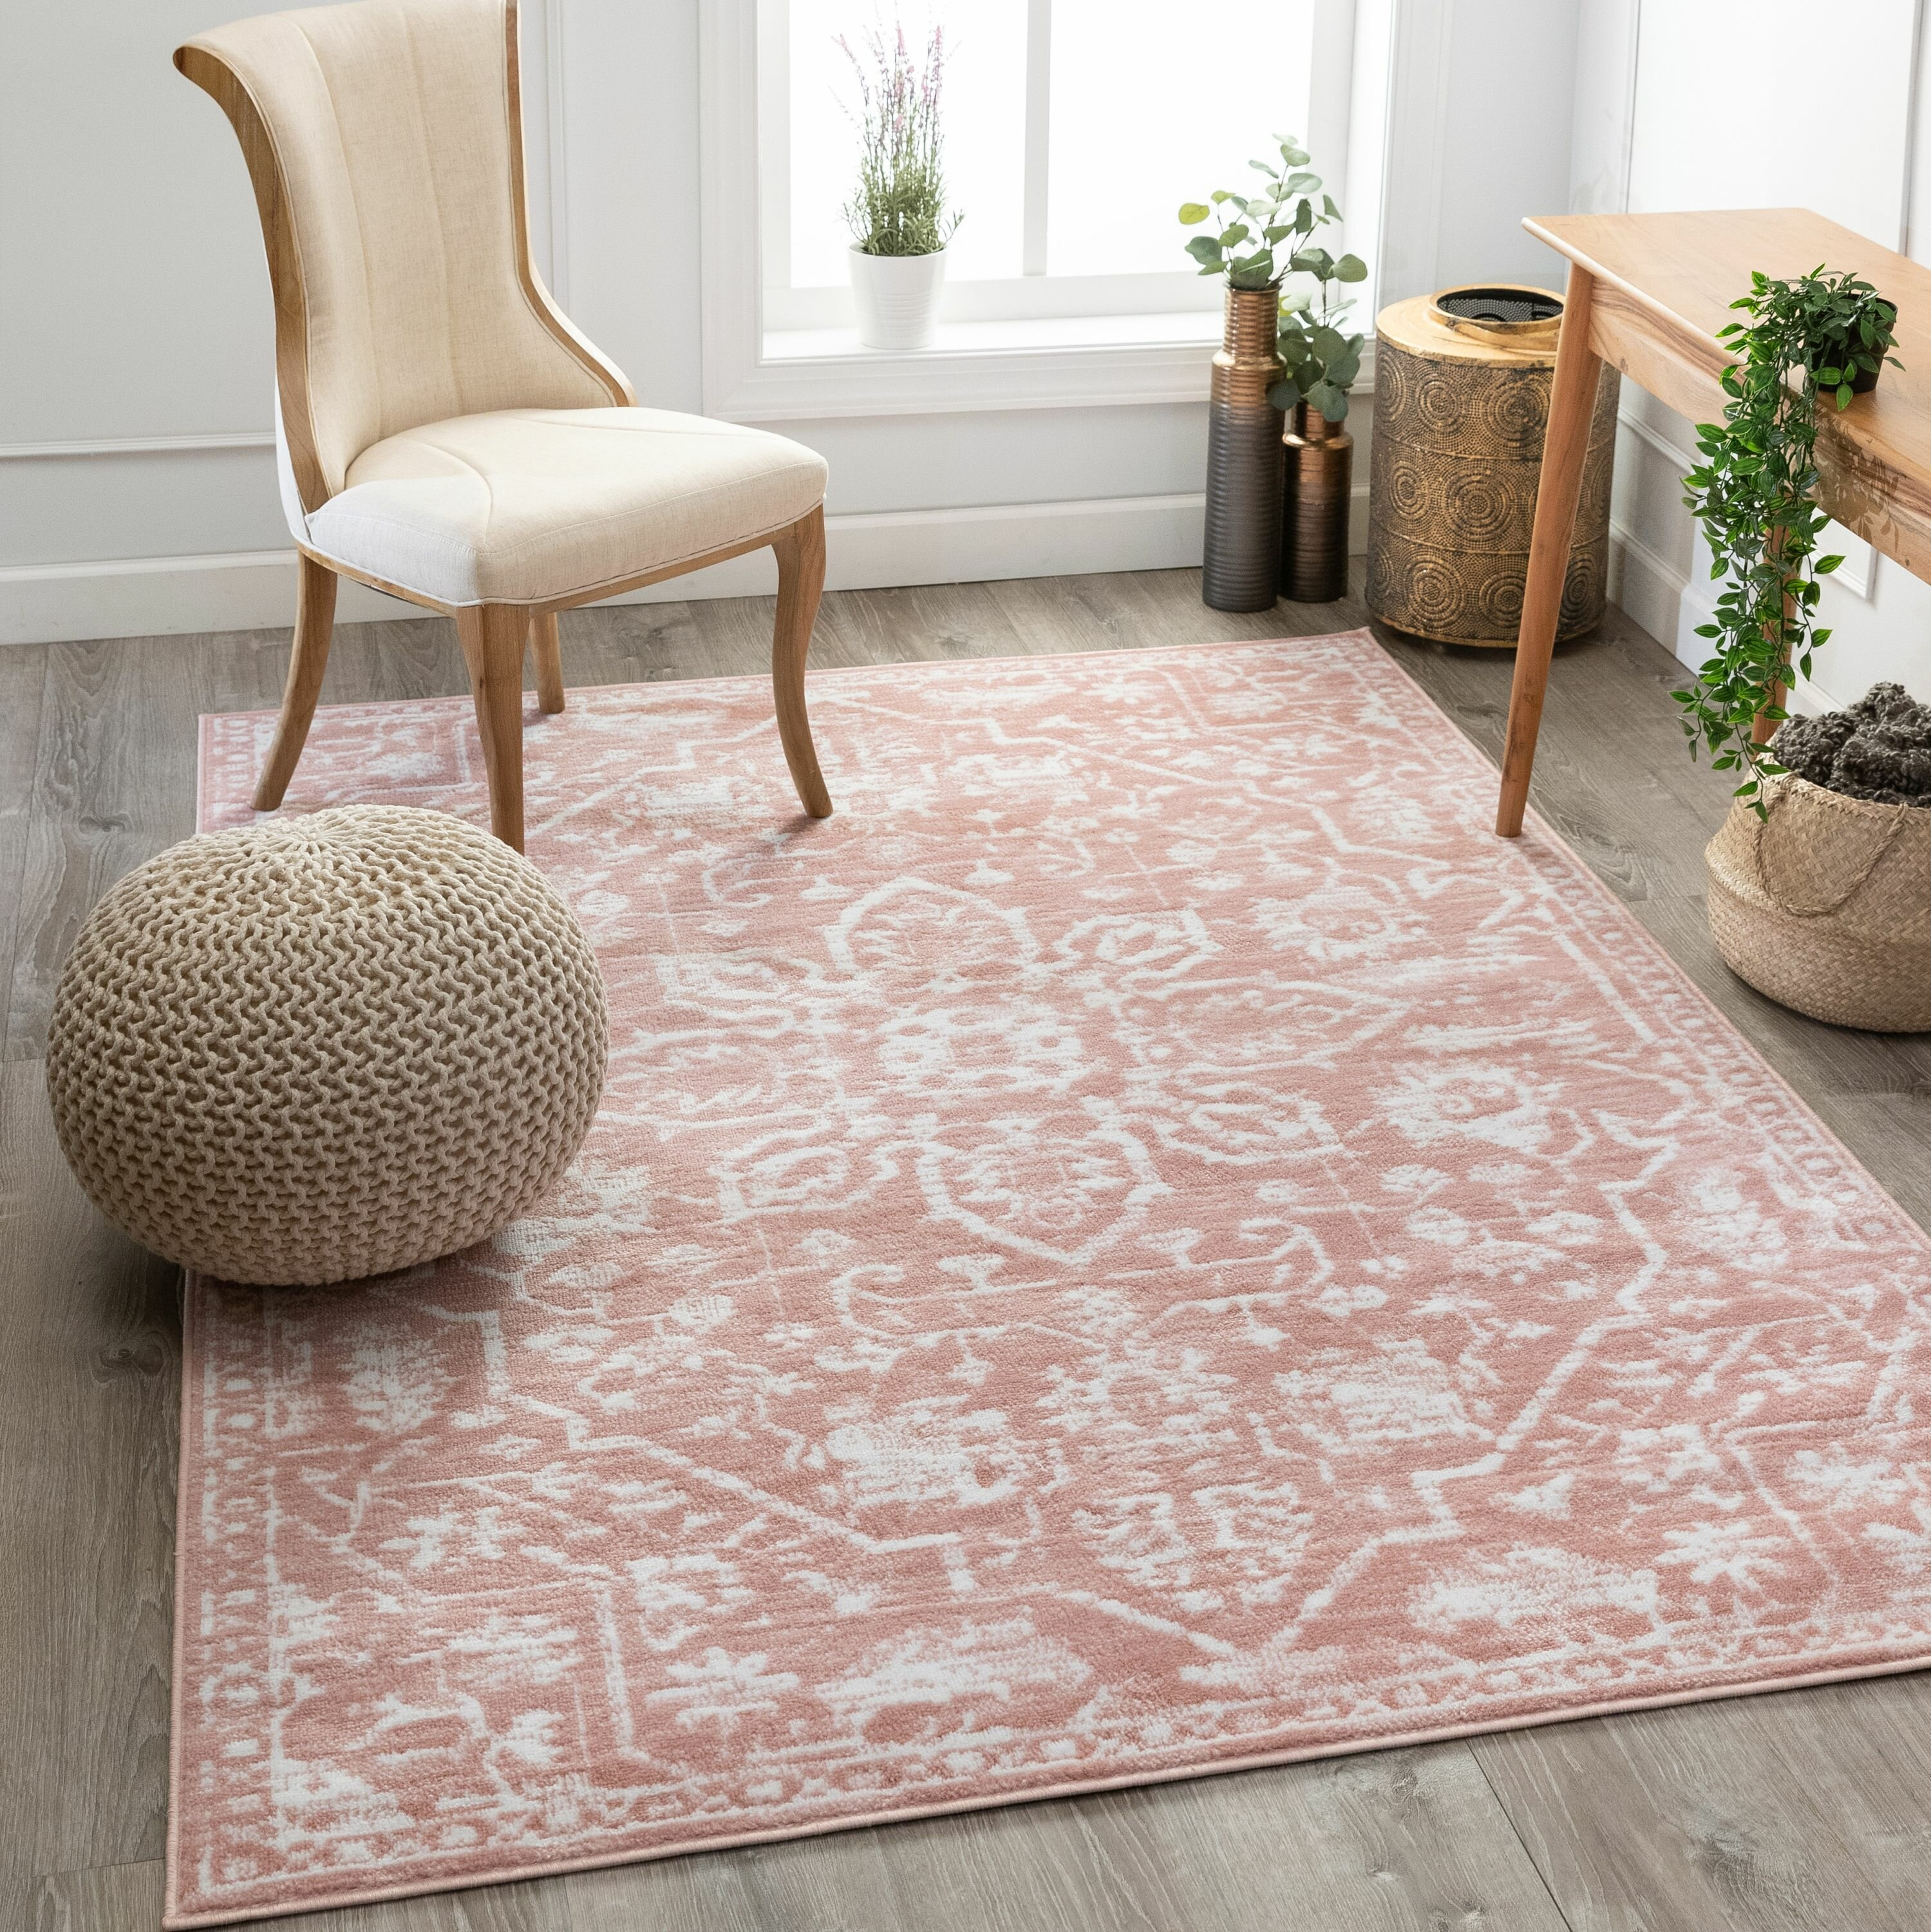 Well Woven Dazzle Power Loom Pink White Rug Reviews Wayfair Co Uk